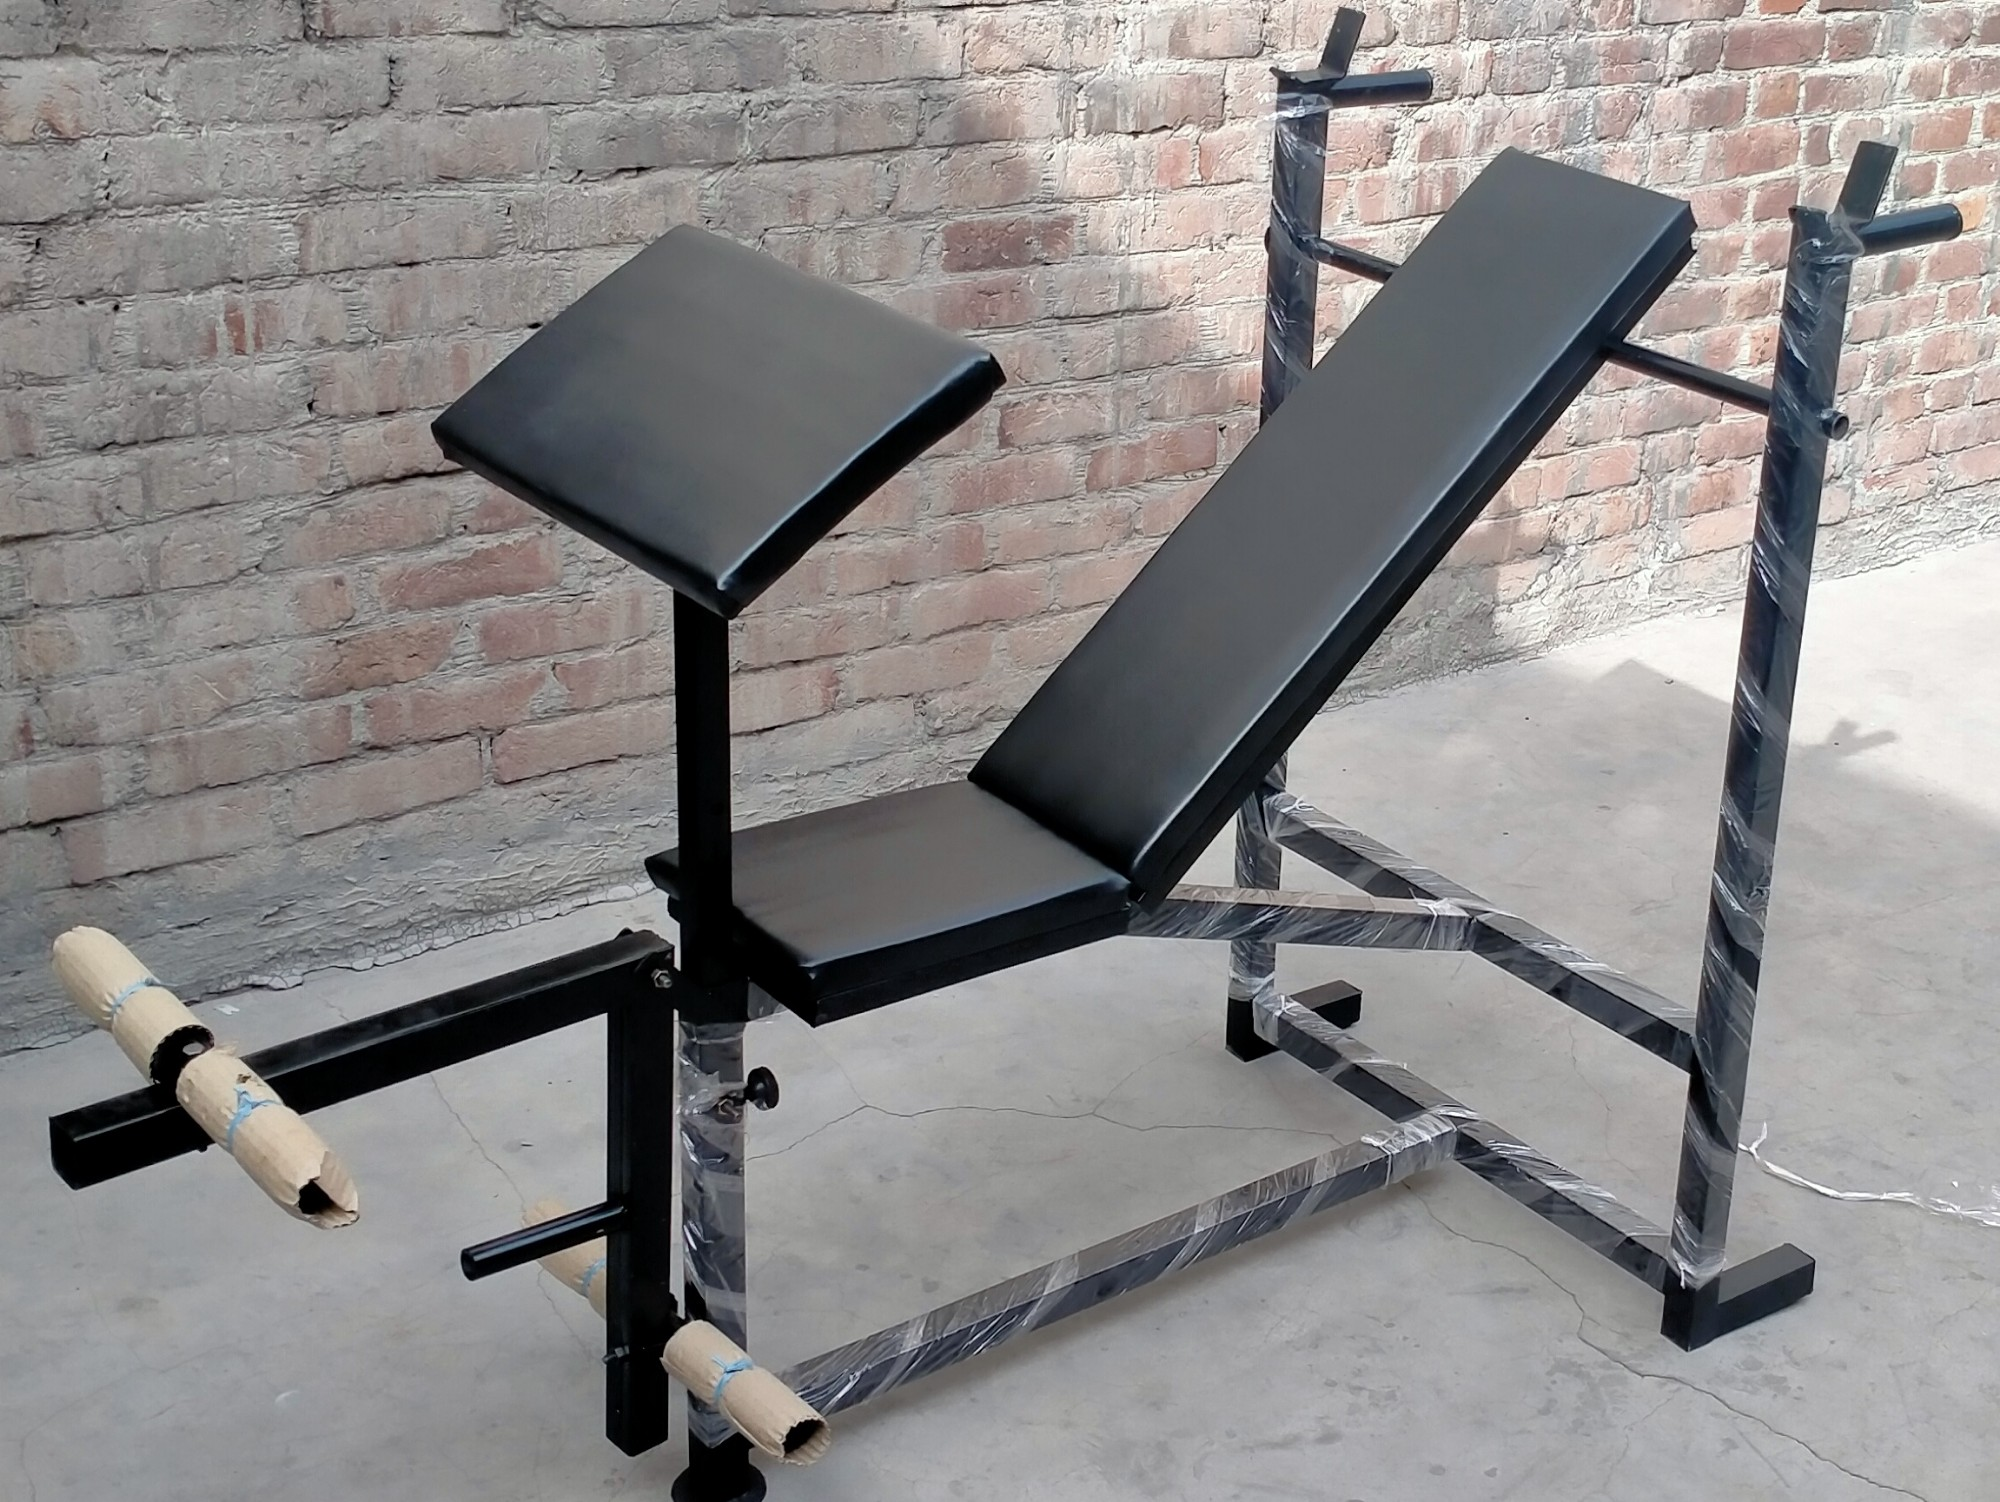 7 in 1 gym exercise bench press incline decline straight bodybuilding bench